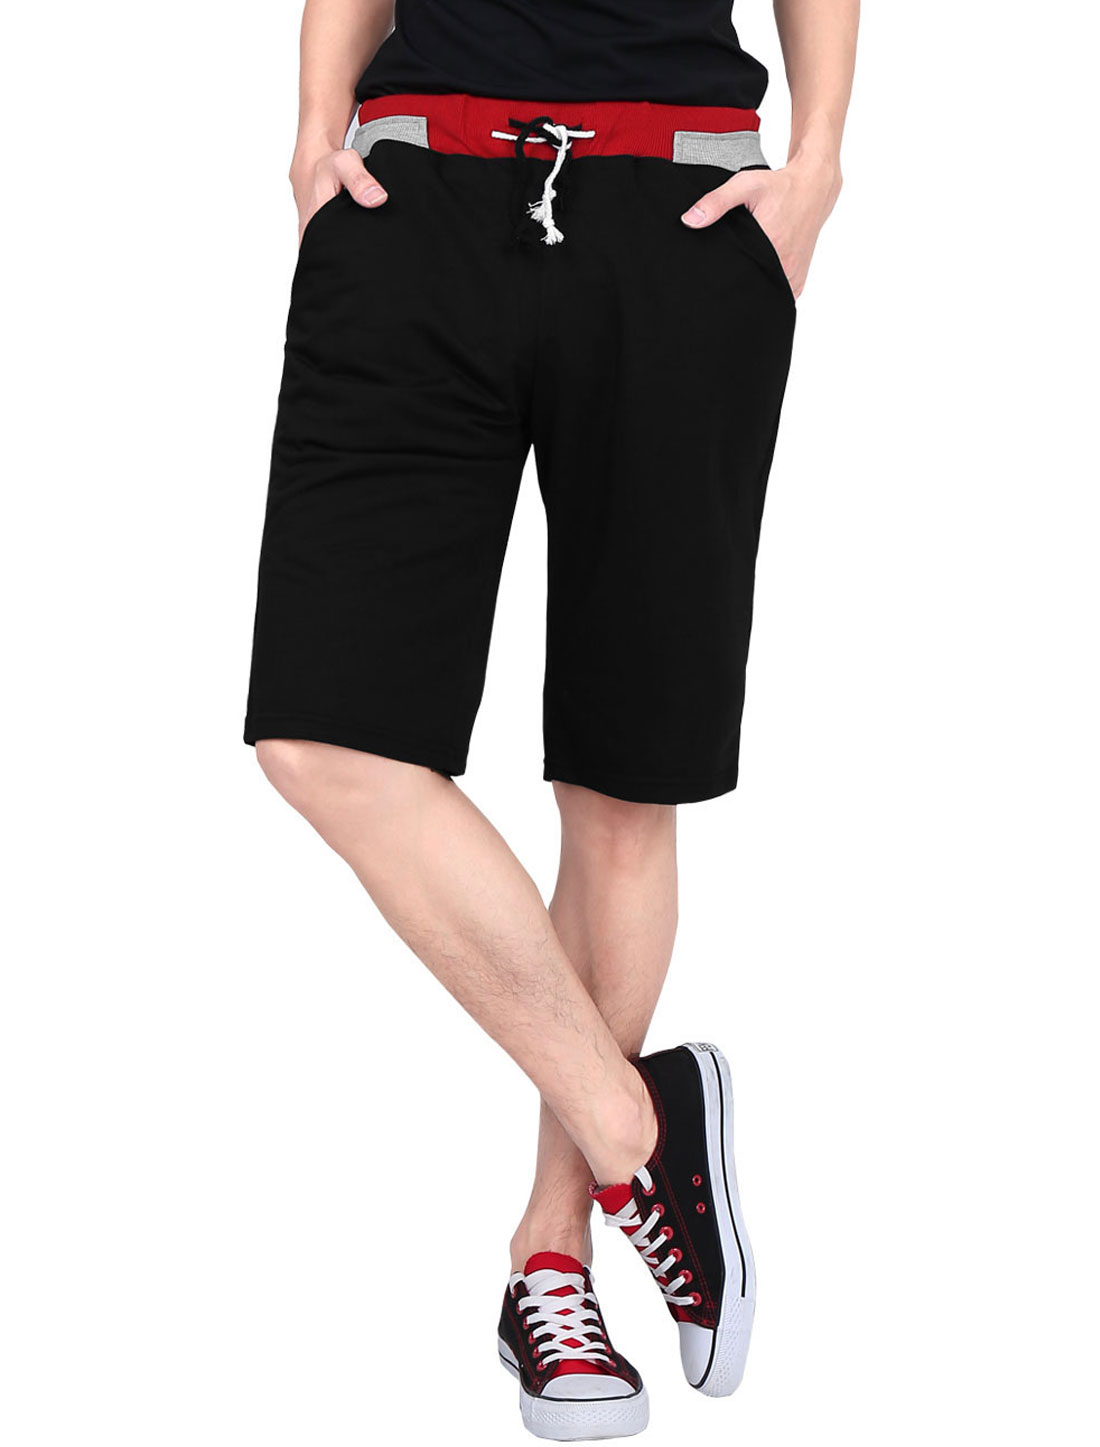 Men Color Block Drawstring Elastic Waistband Boardshorts Shorts Black M